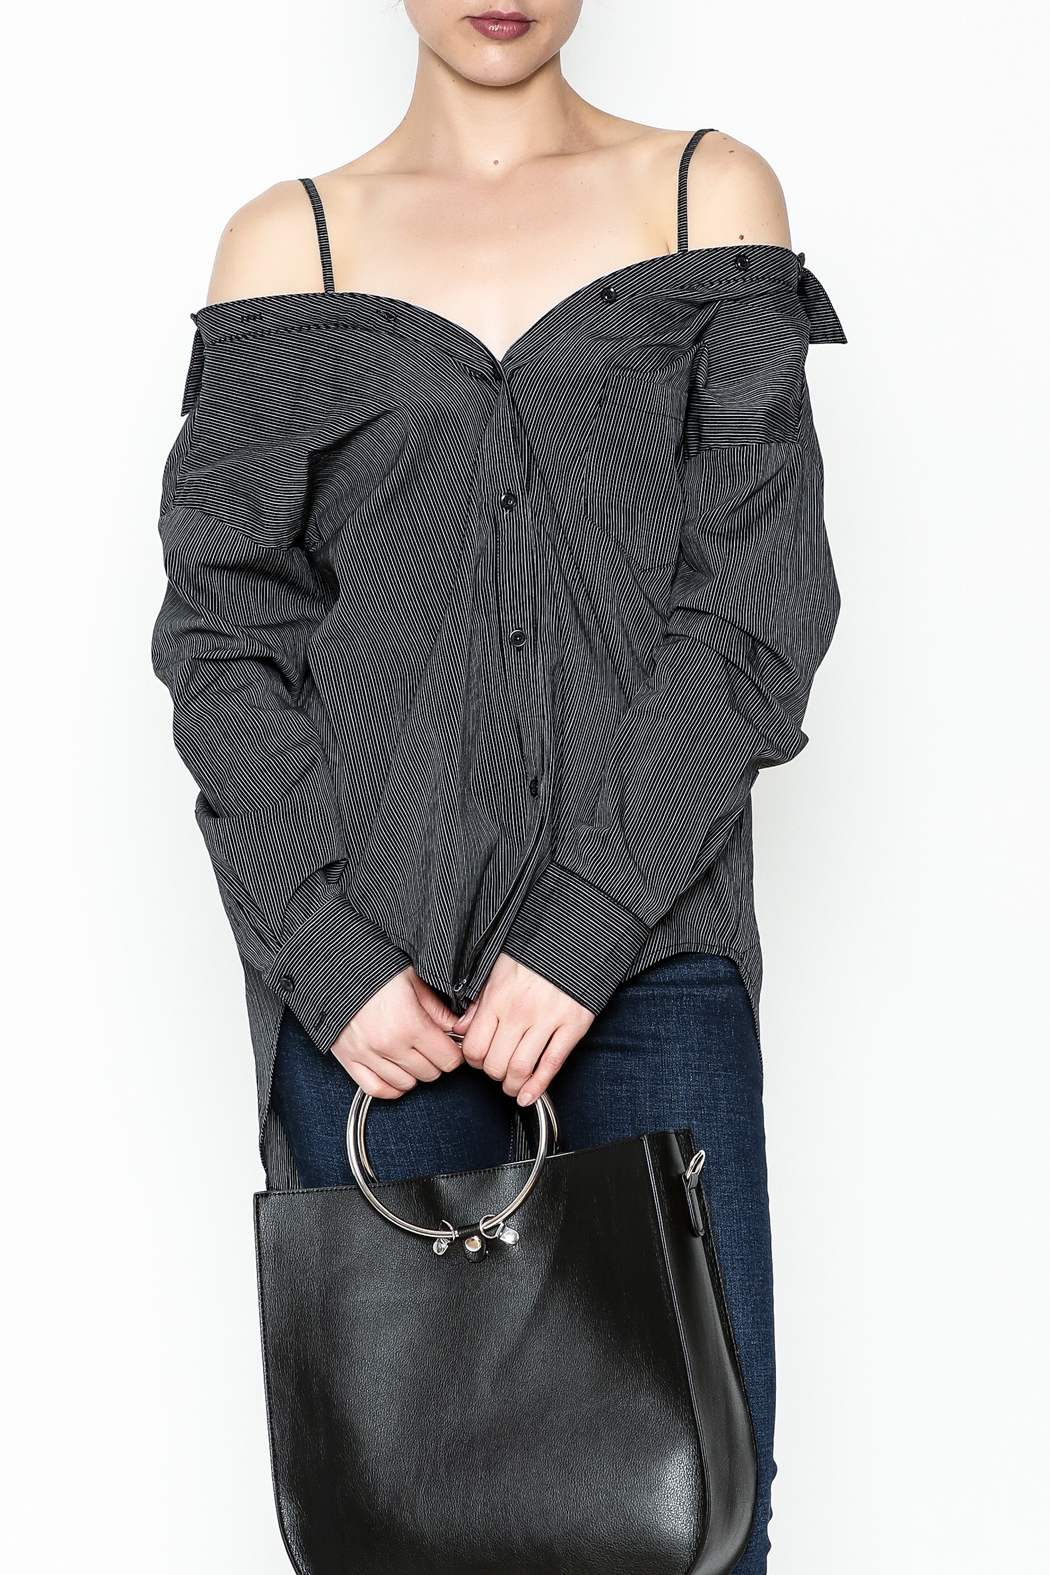 y&i clothing boutique Celine Stripe Blouse - Main Image